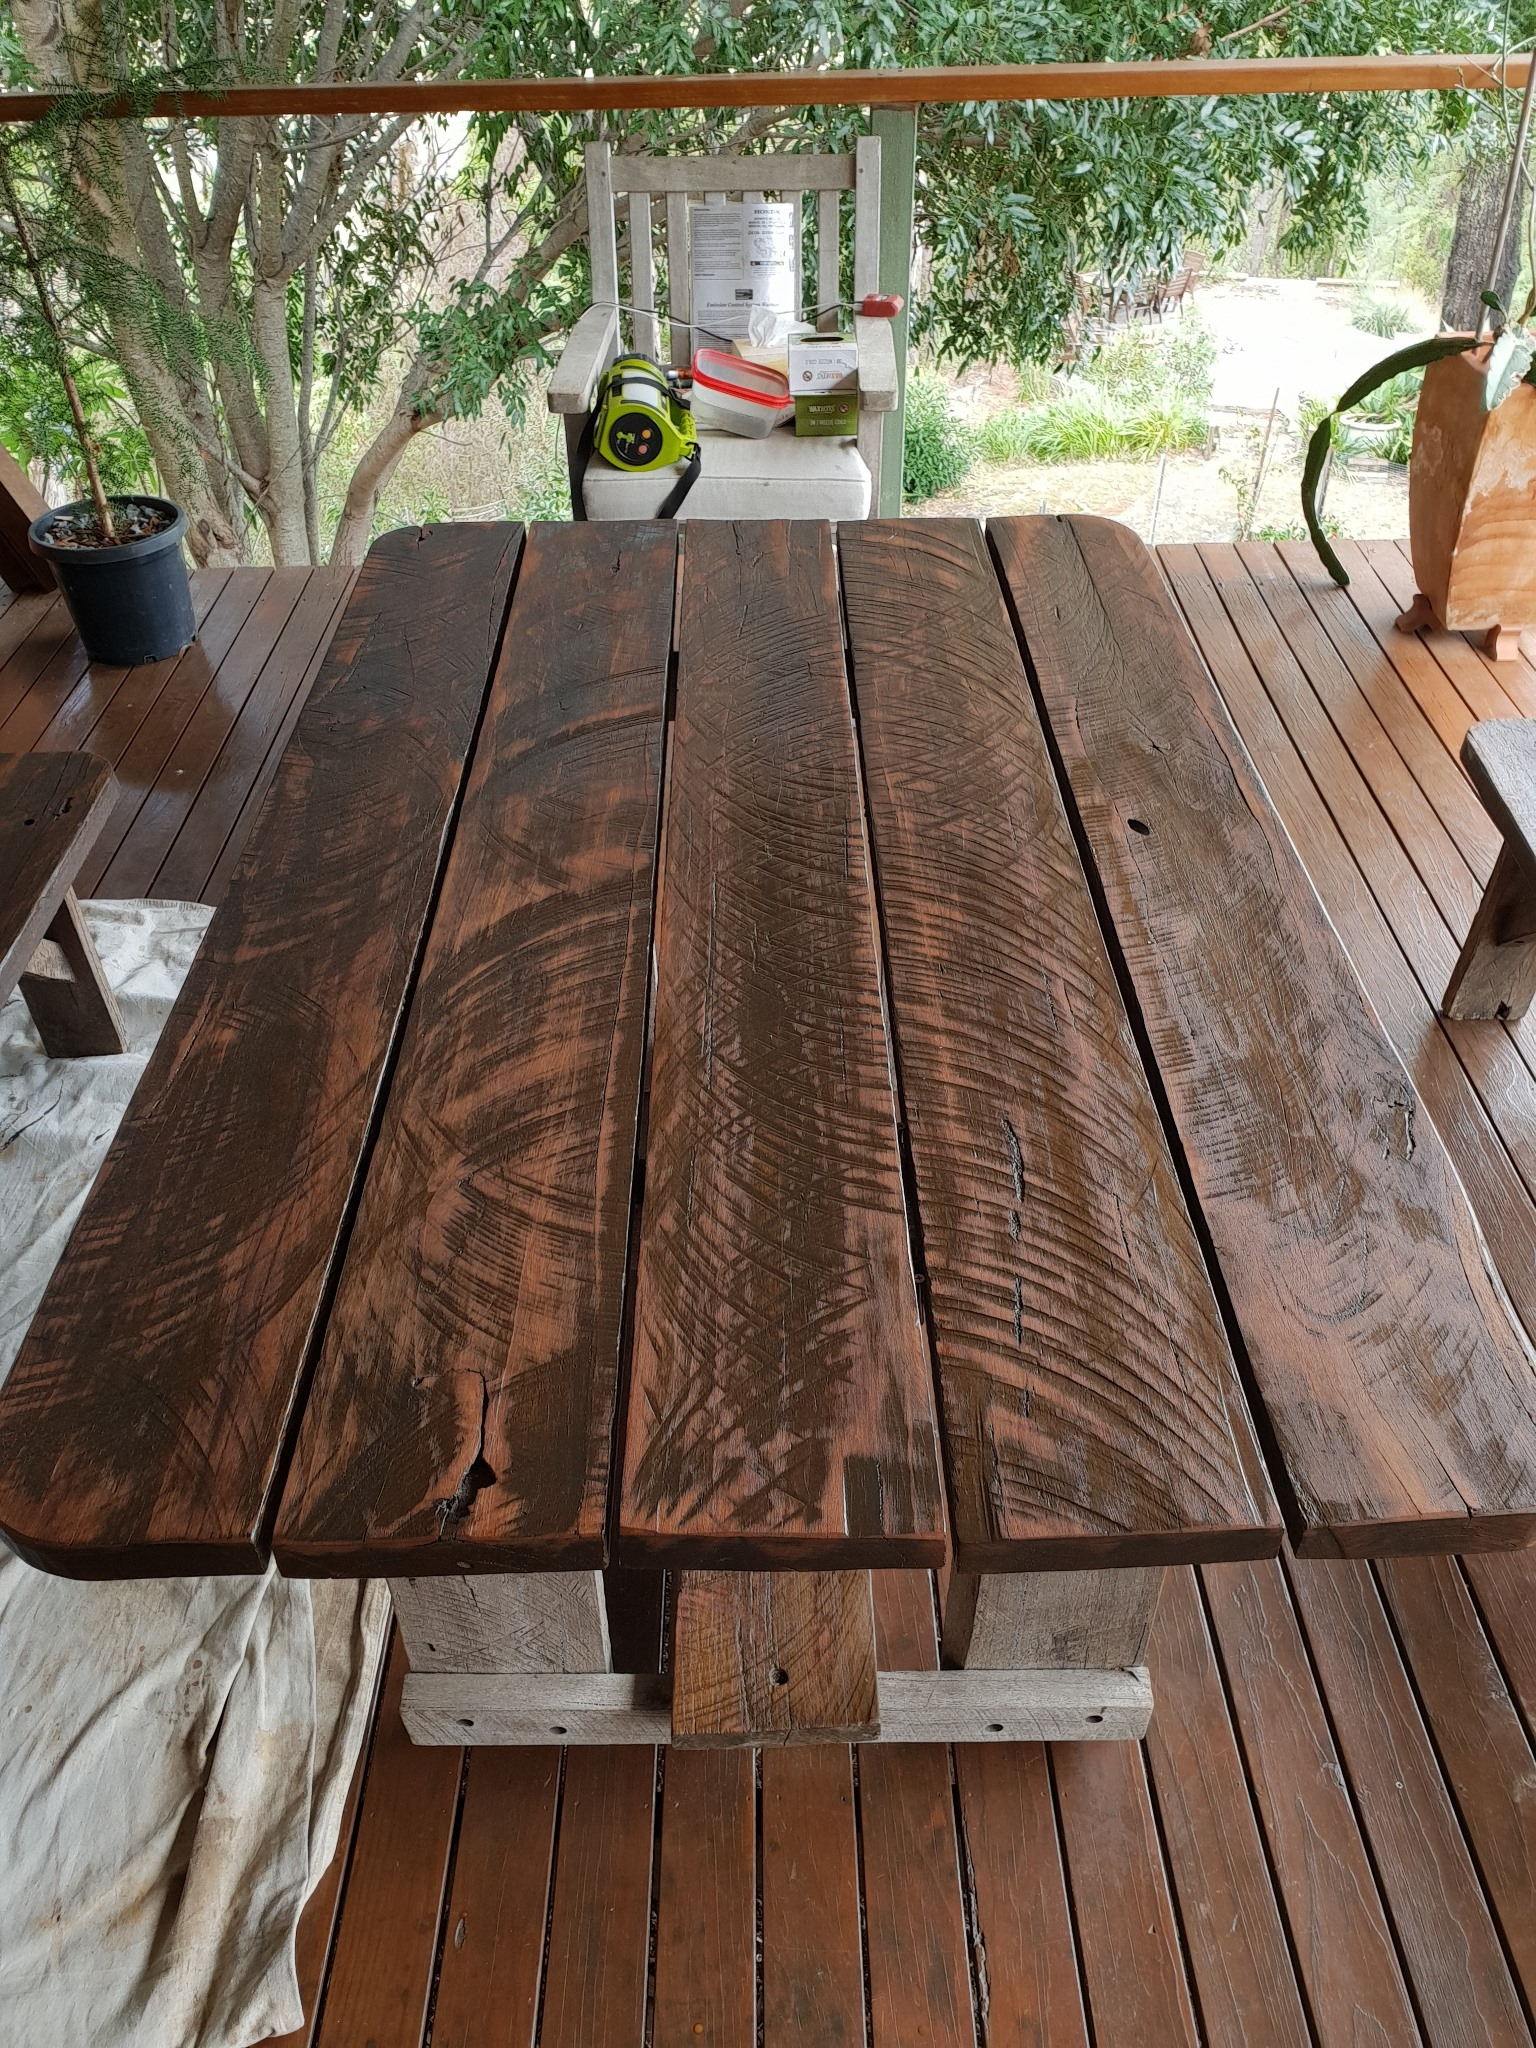 Hardwood table maintenance